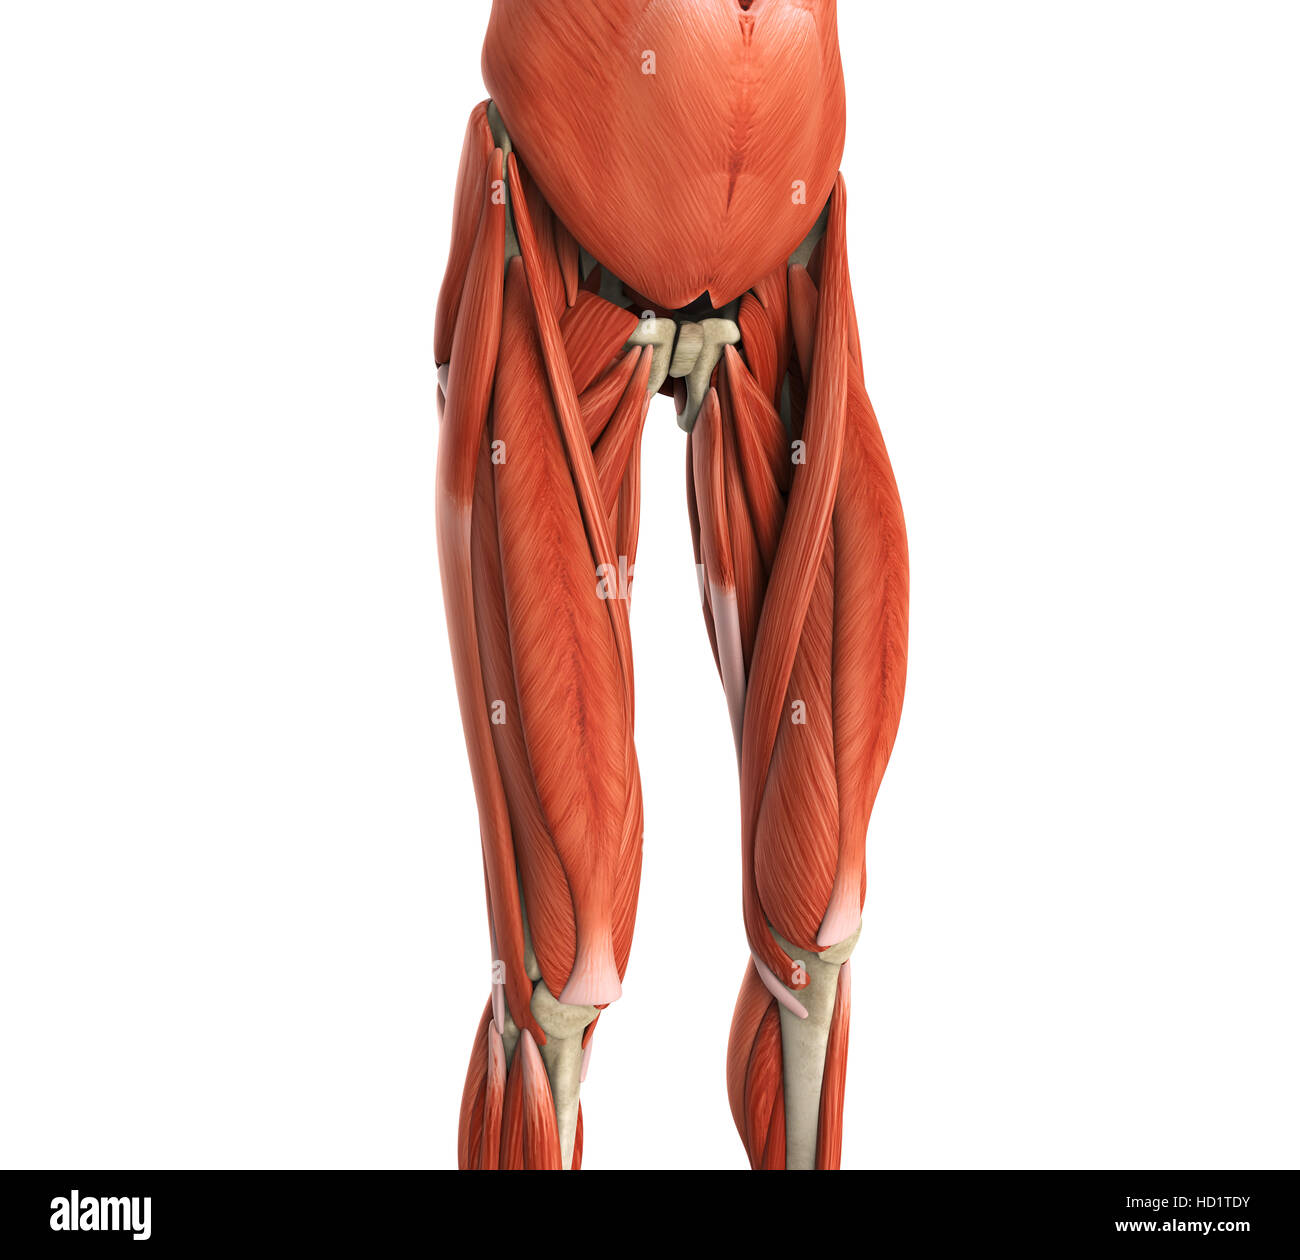 Upper Legs Muscles Anatomy Stock Photo 128504263 Alamy